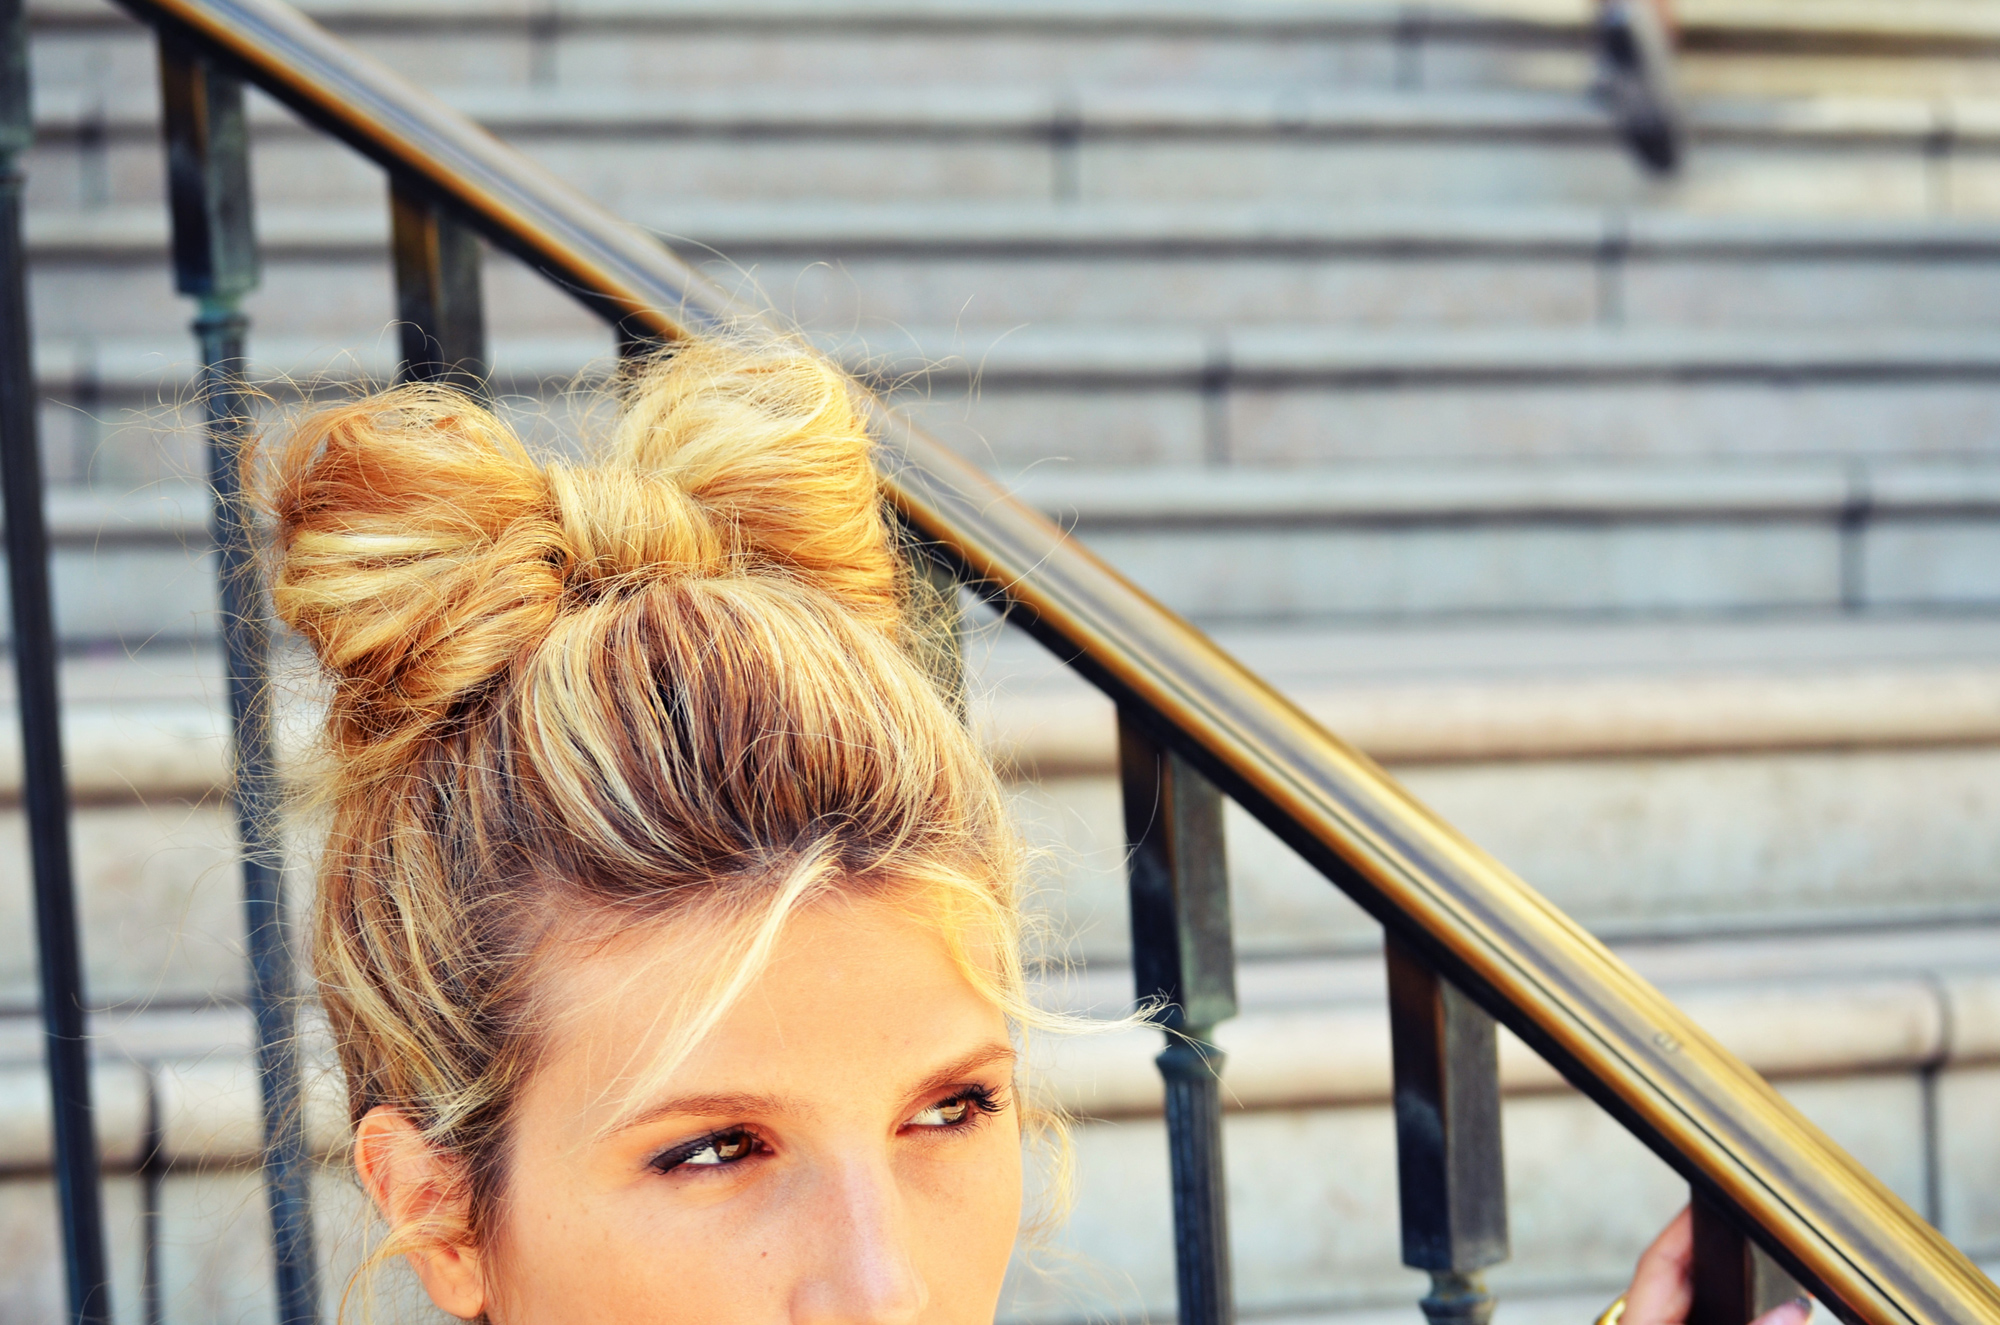 Mr Kate Diy Hair Bow Bun Tutorial